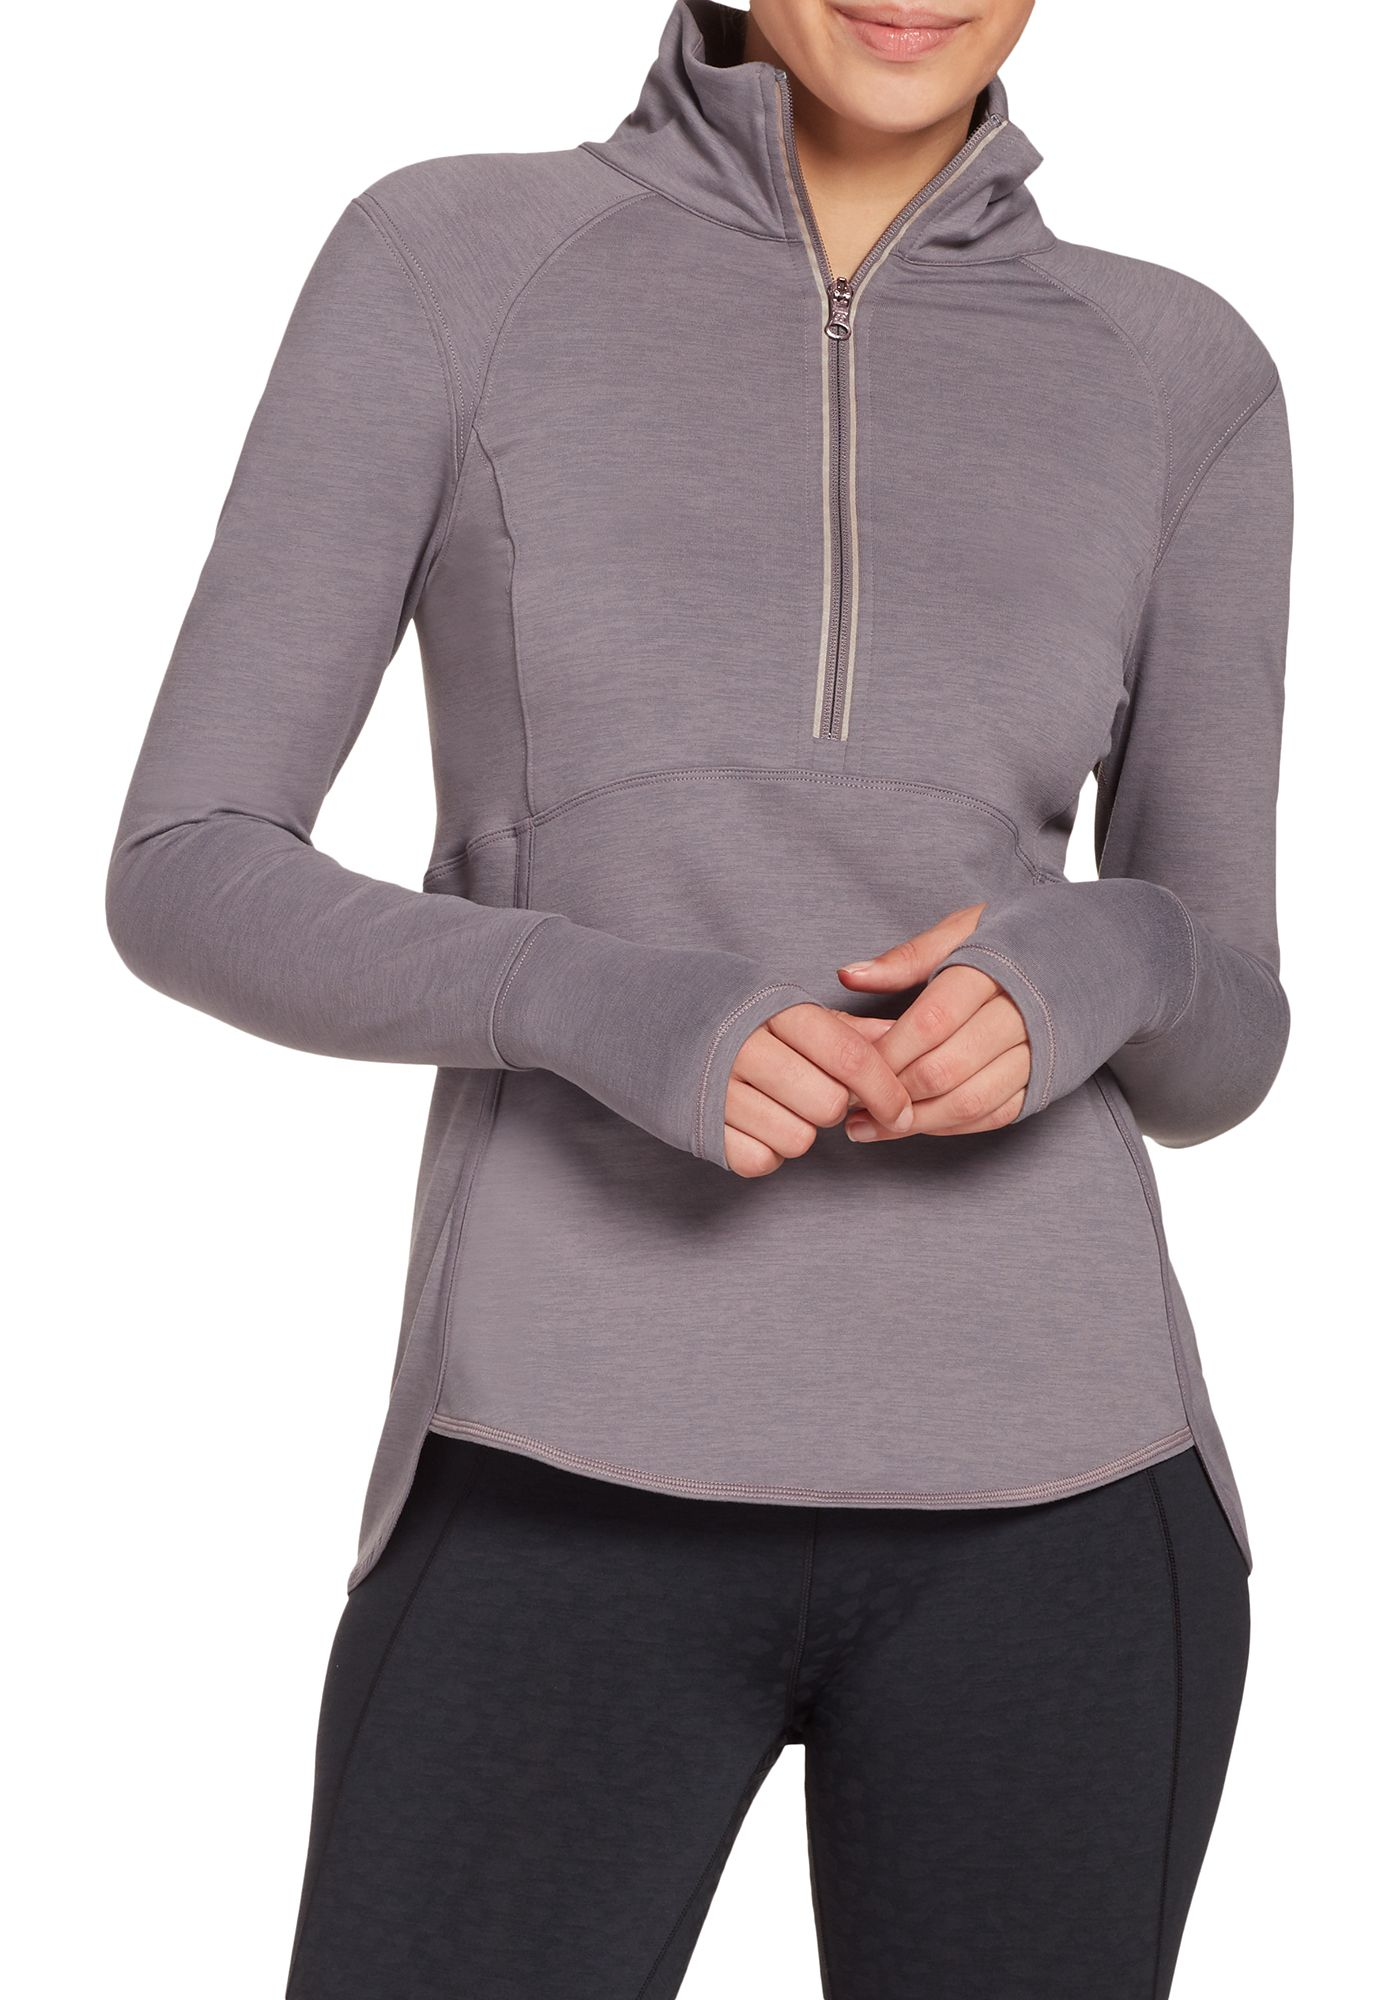 CALIA by Carrie Underwood Women's Cold Weather Compression Layering 1/2 Zip Long Sleeve Shirt